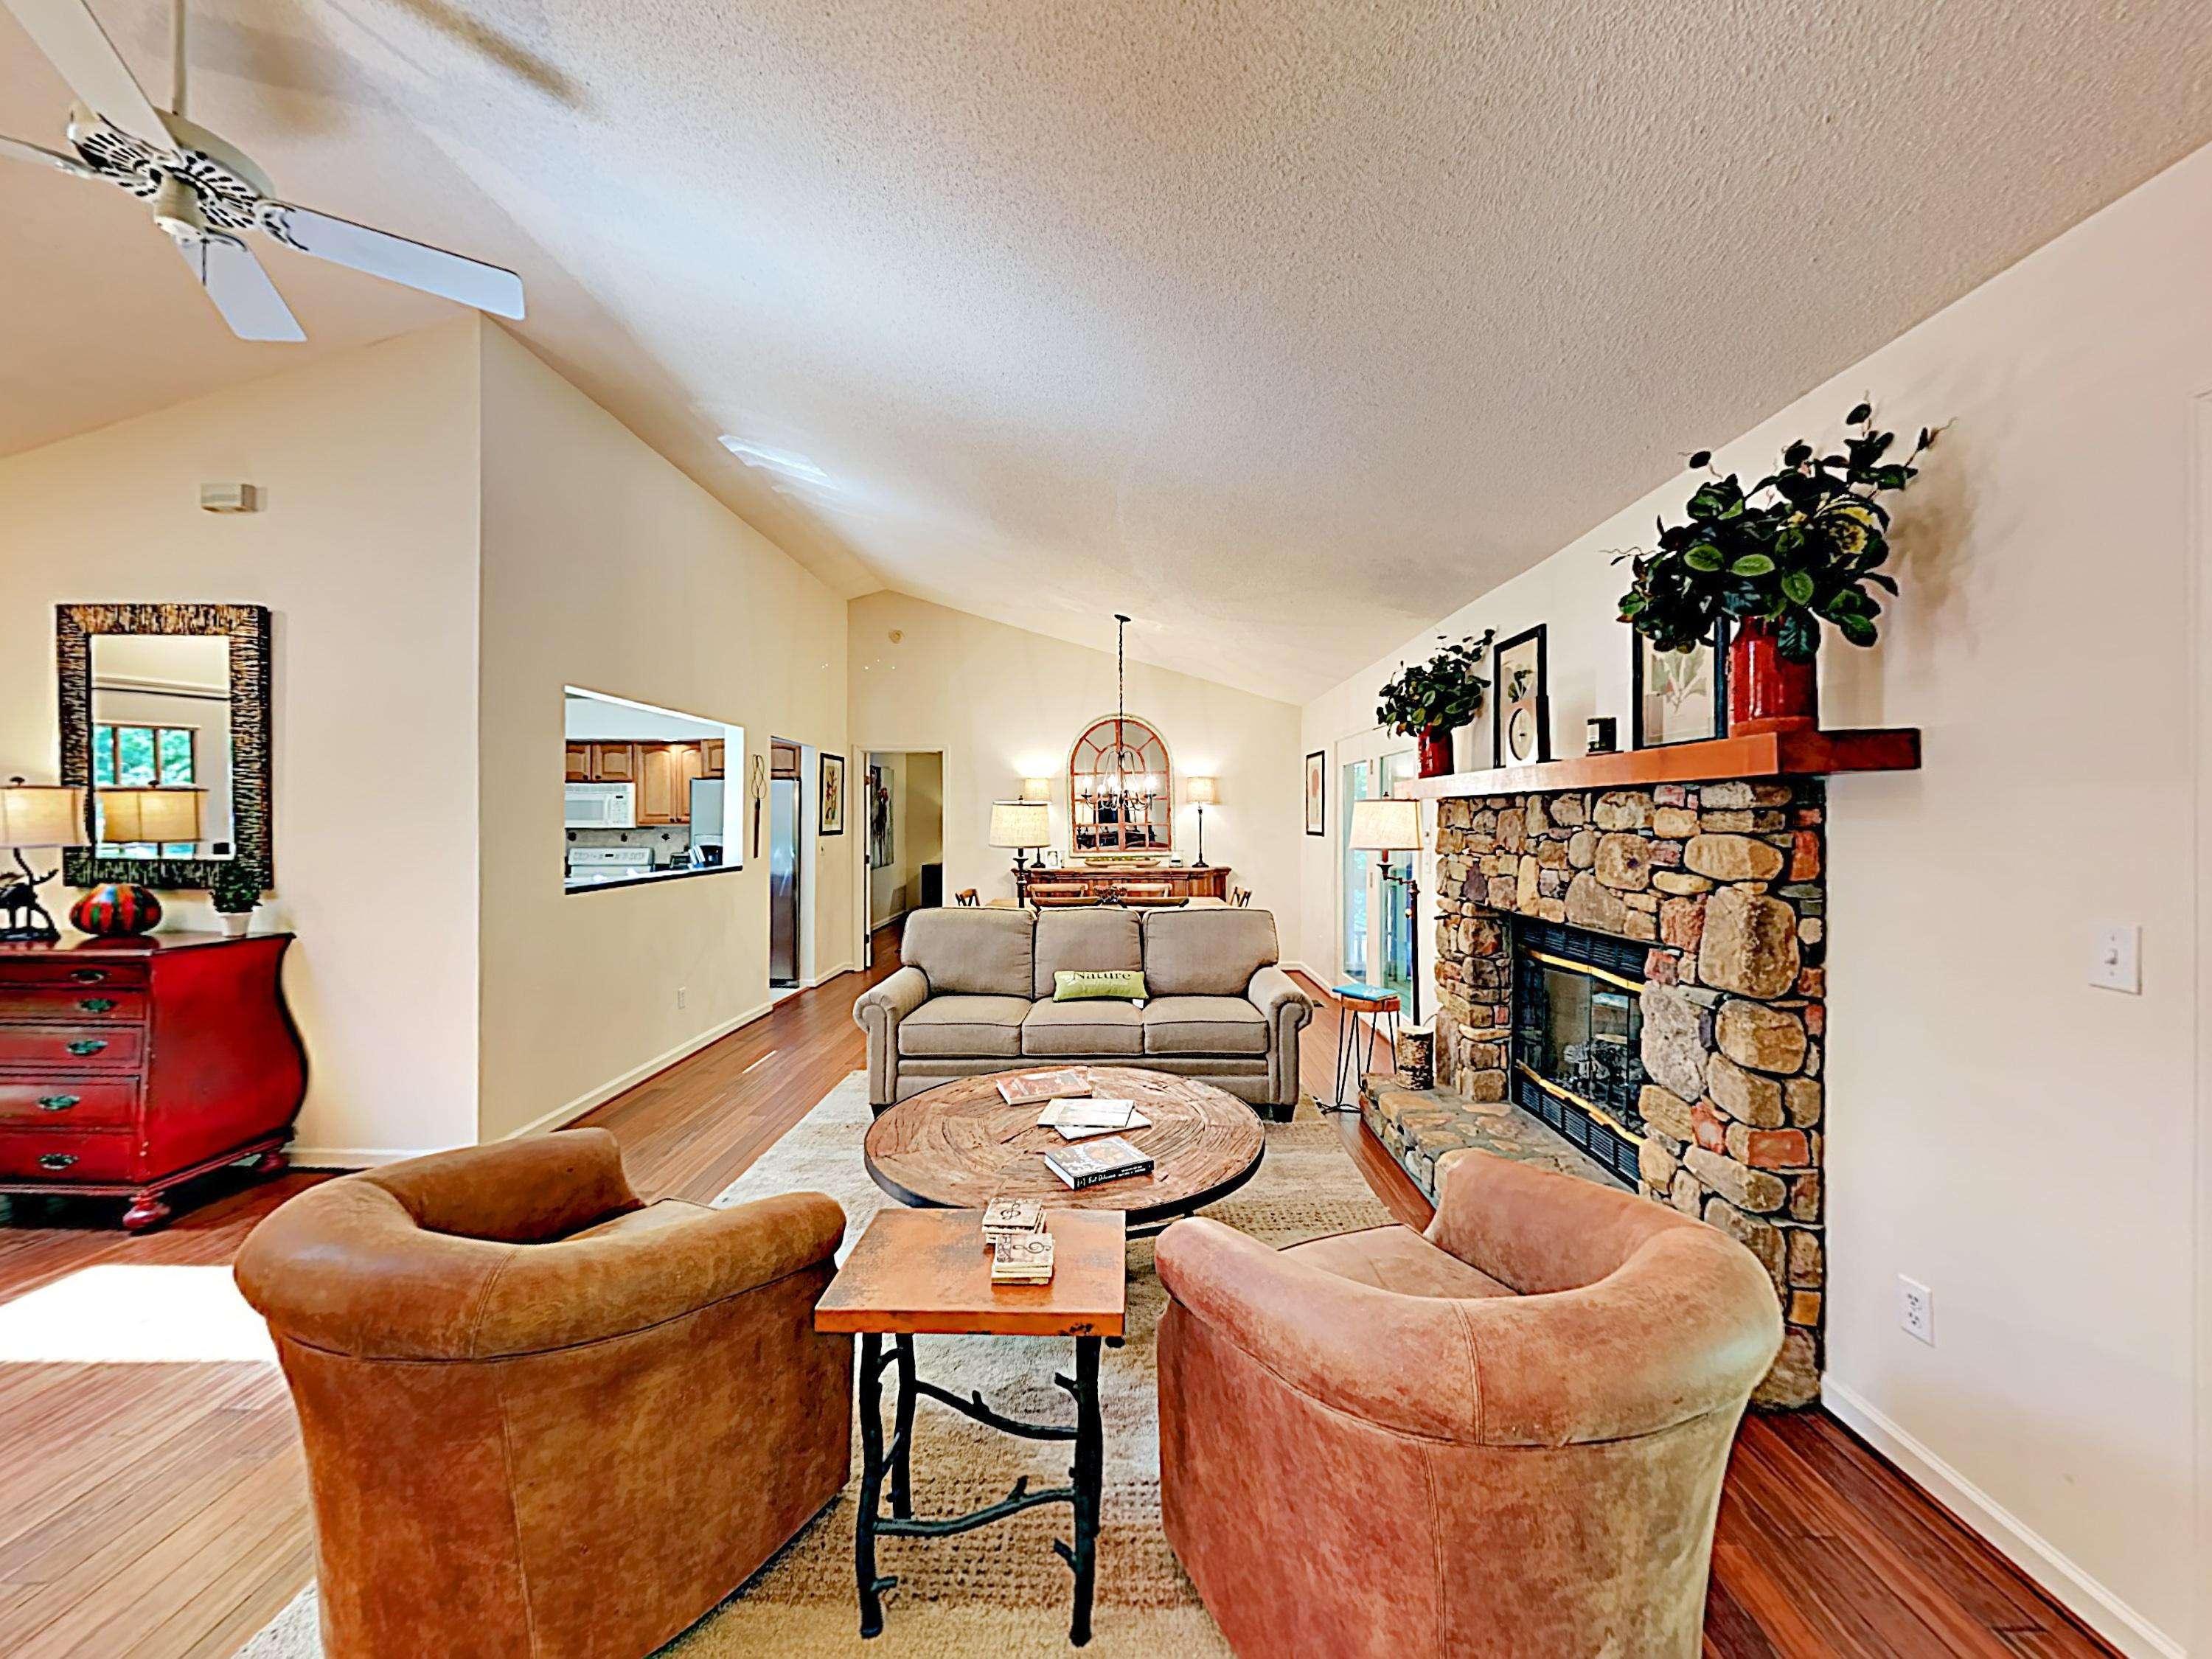 Welcome to Brevard! This home is professionally managed by TurnKey Vacation Rentals.